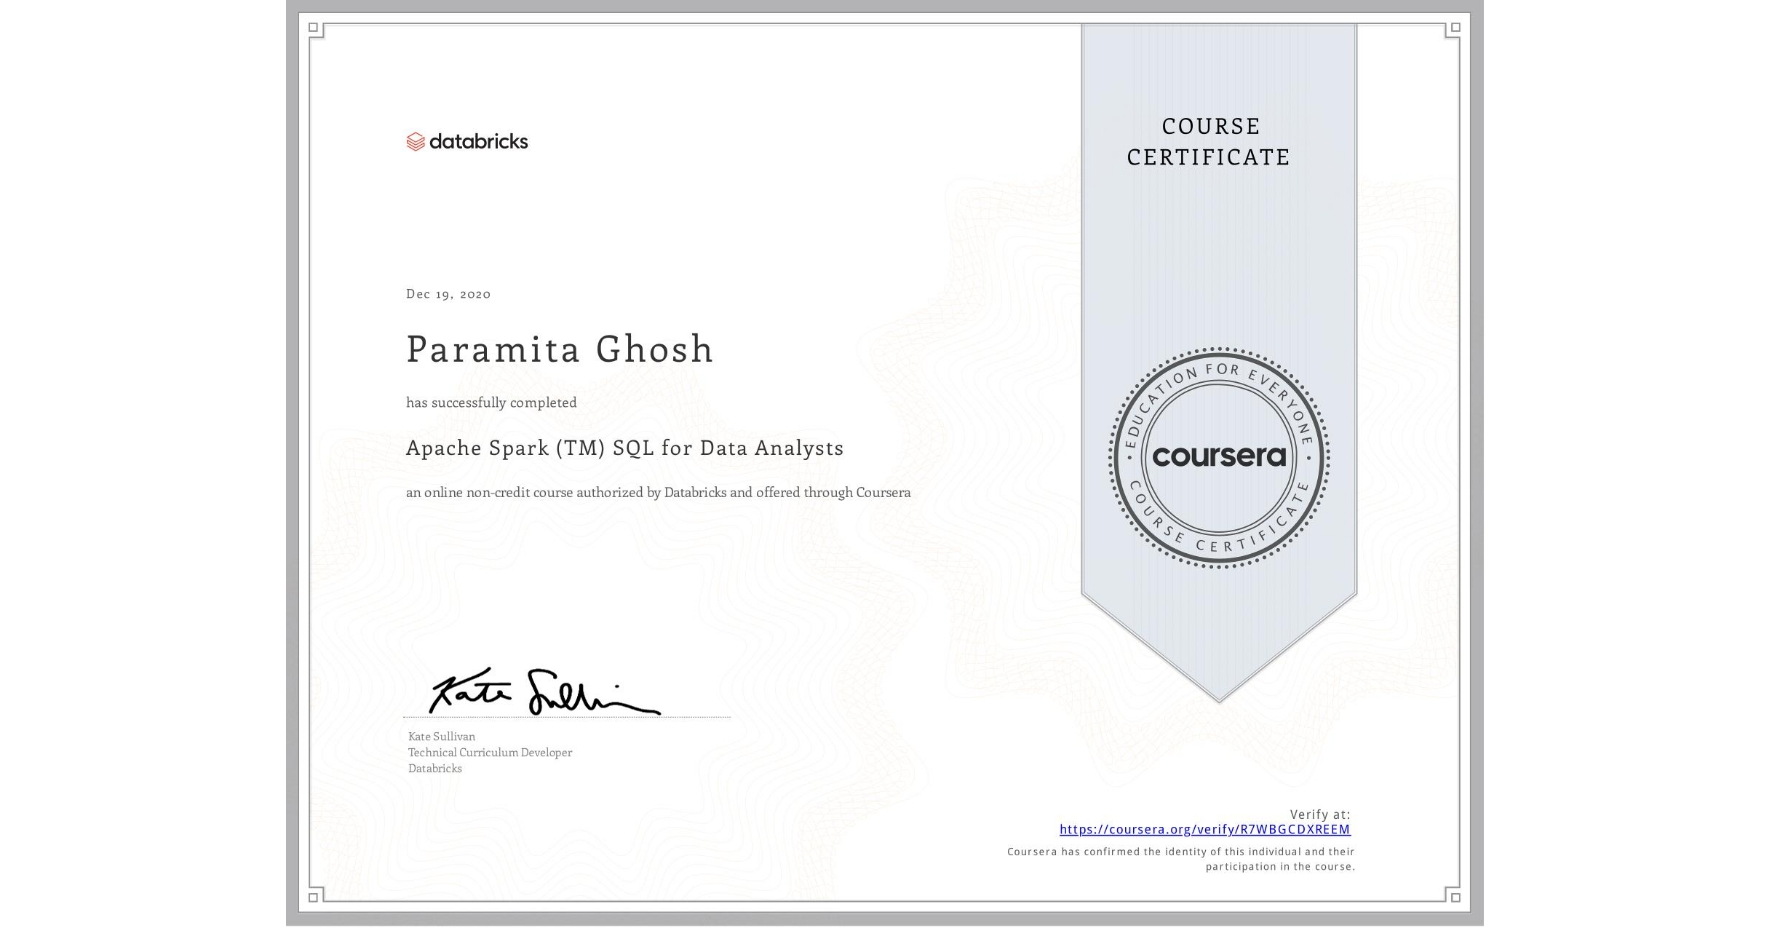 View certificate for Paramita Ghosh, Apache Spark (TM) SQL for Data Analysts, an online non-credit course authorized by Databricks and offered through Coursera